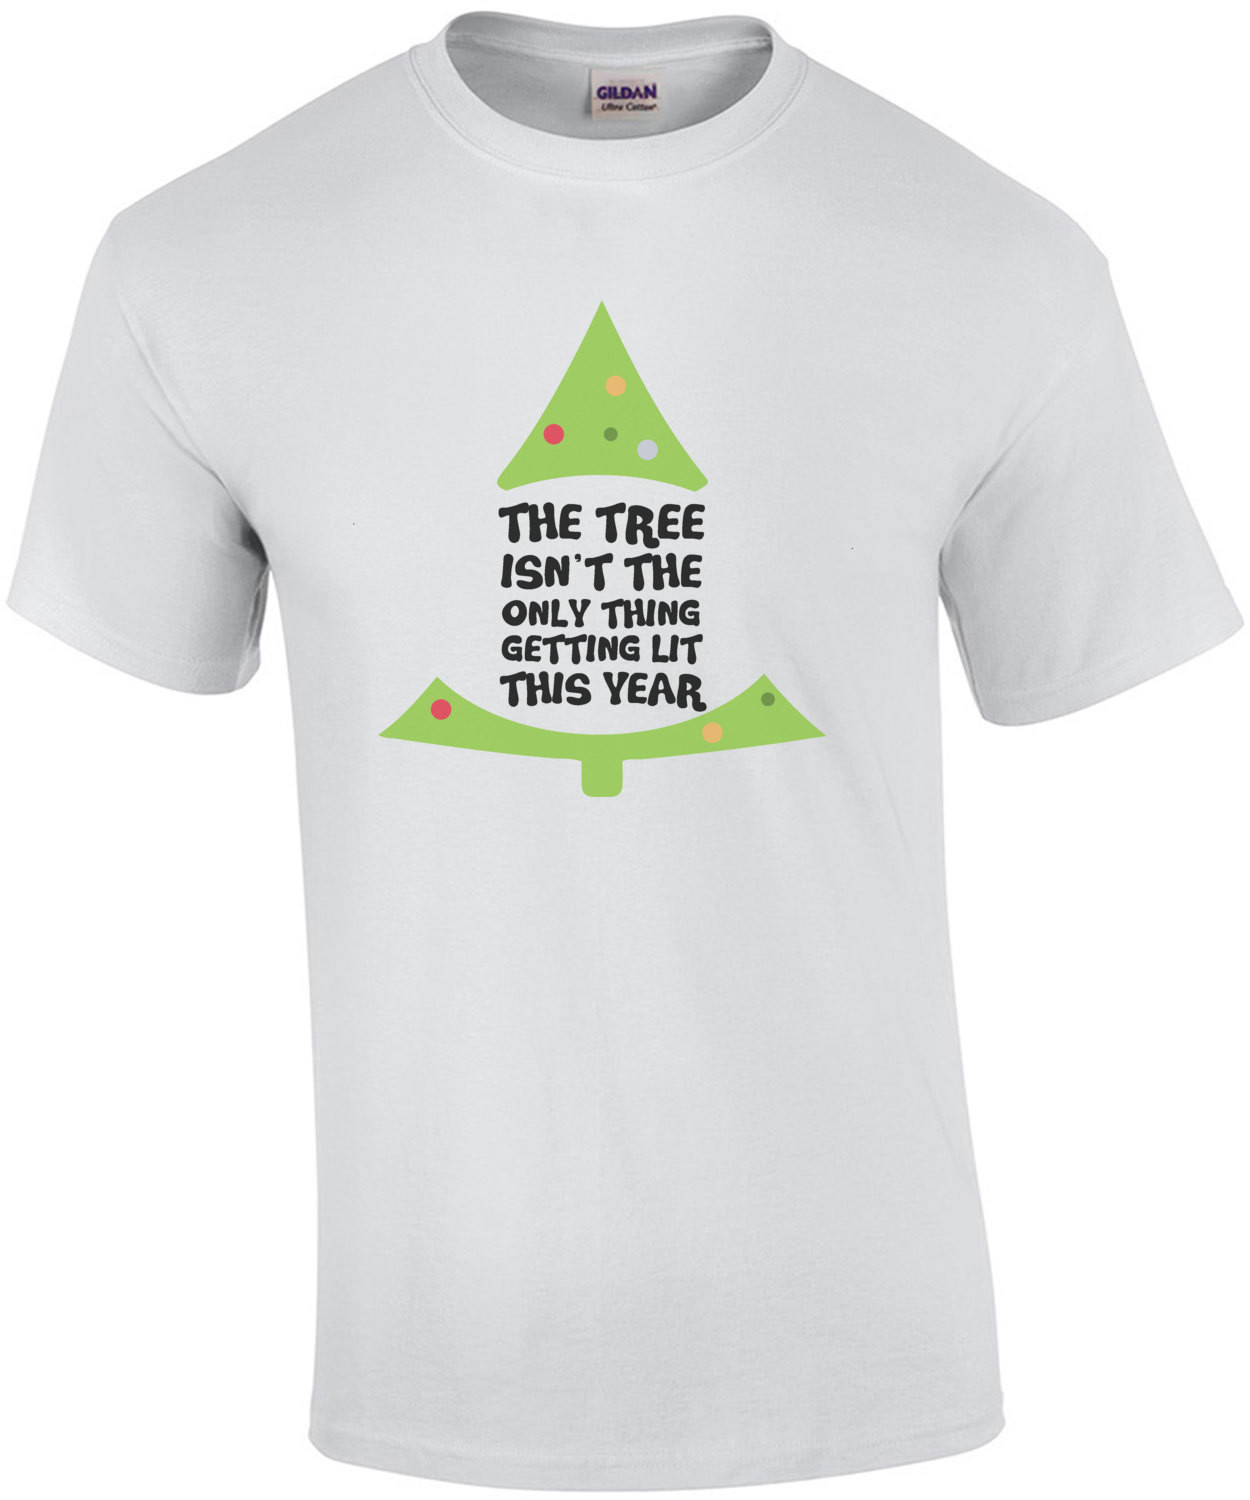 The tree isn't the only thing getting lit this year - funny Christmas Drinking T-Shirt